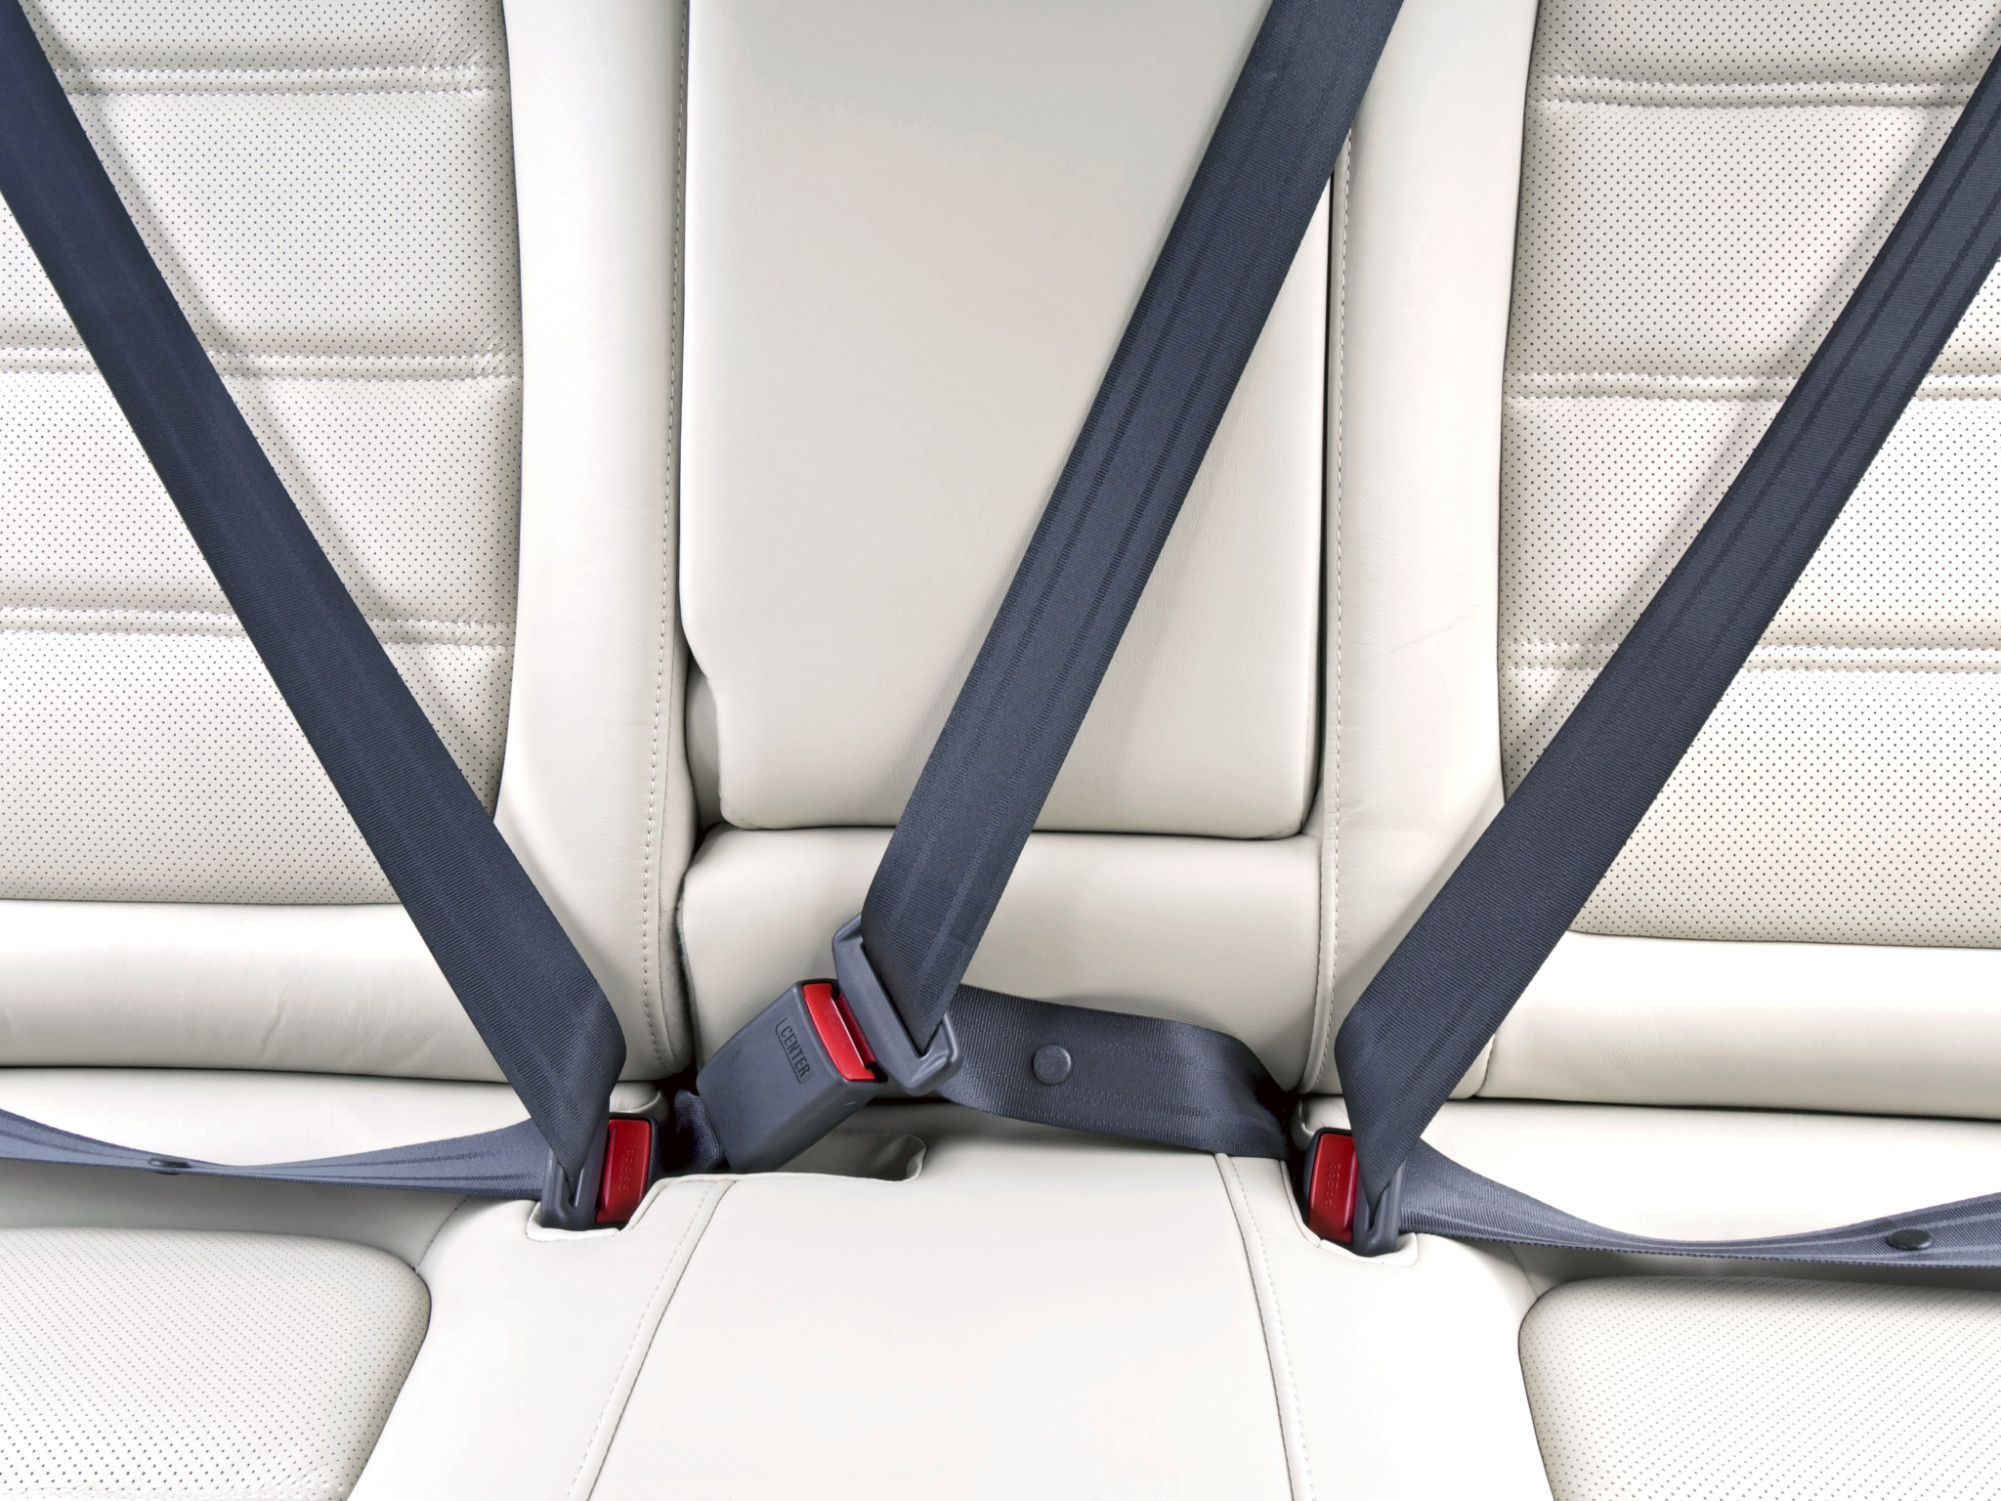 Travelling on expressway? Tie your seat belt even if you are in back seat